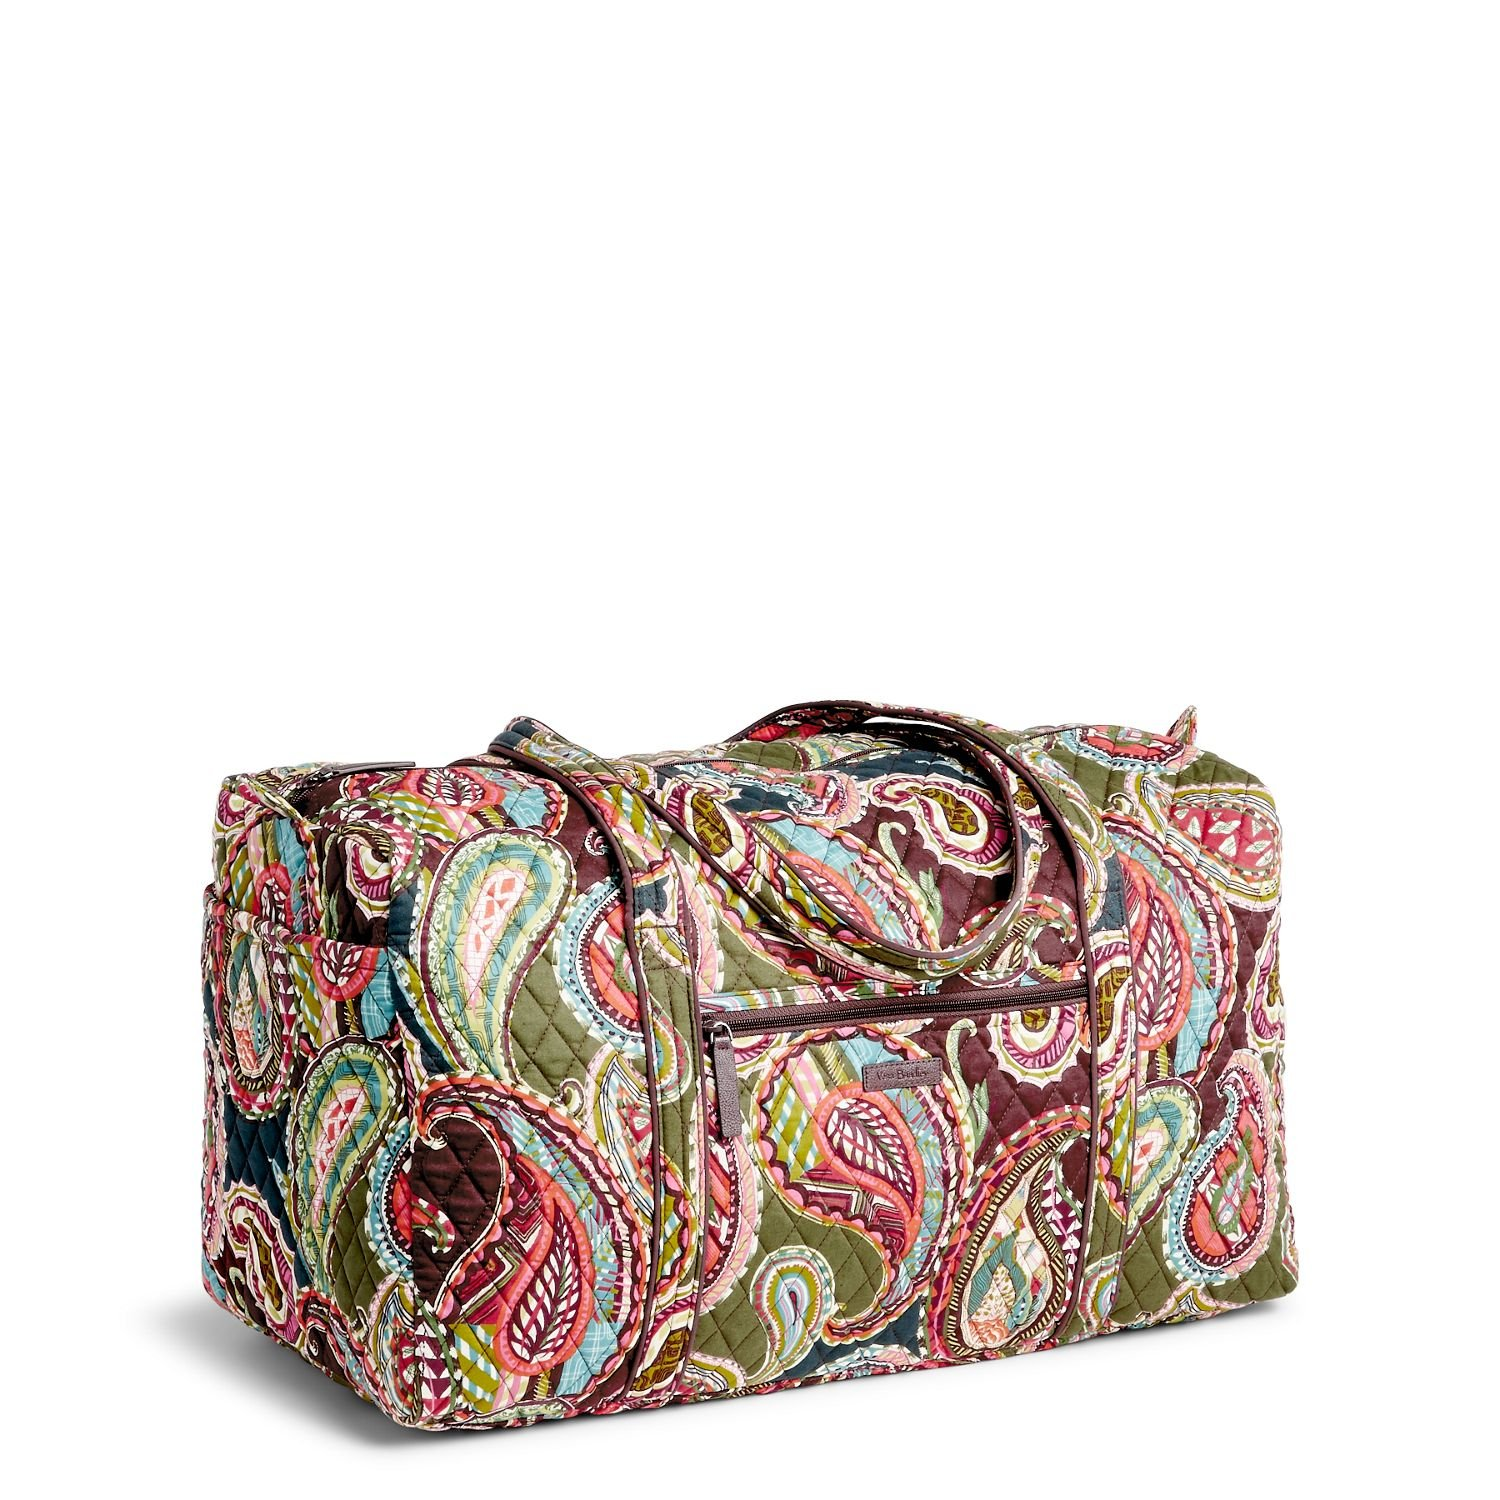 Vera Bradley Large Duffel Bag (Batik Leaves)